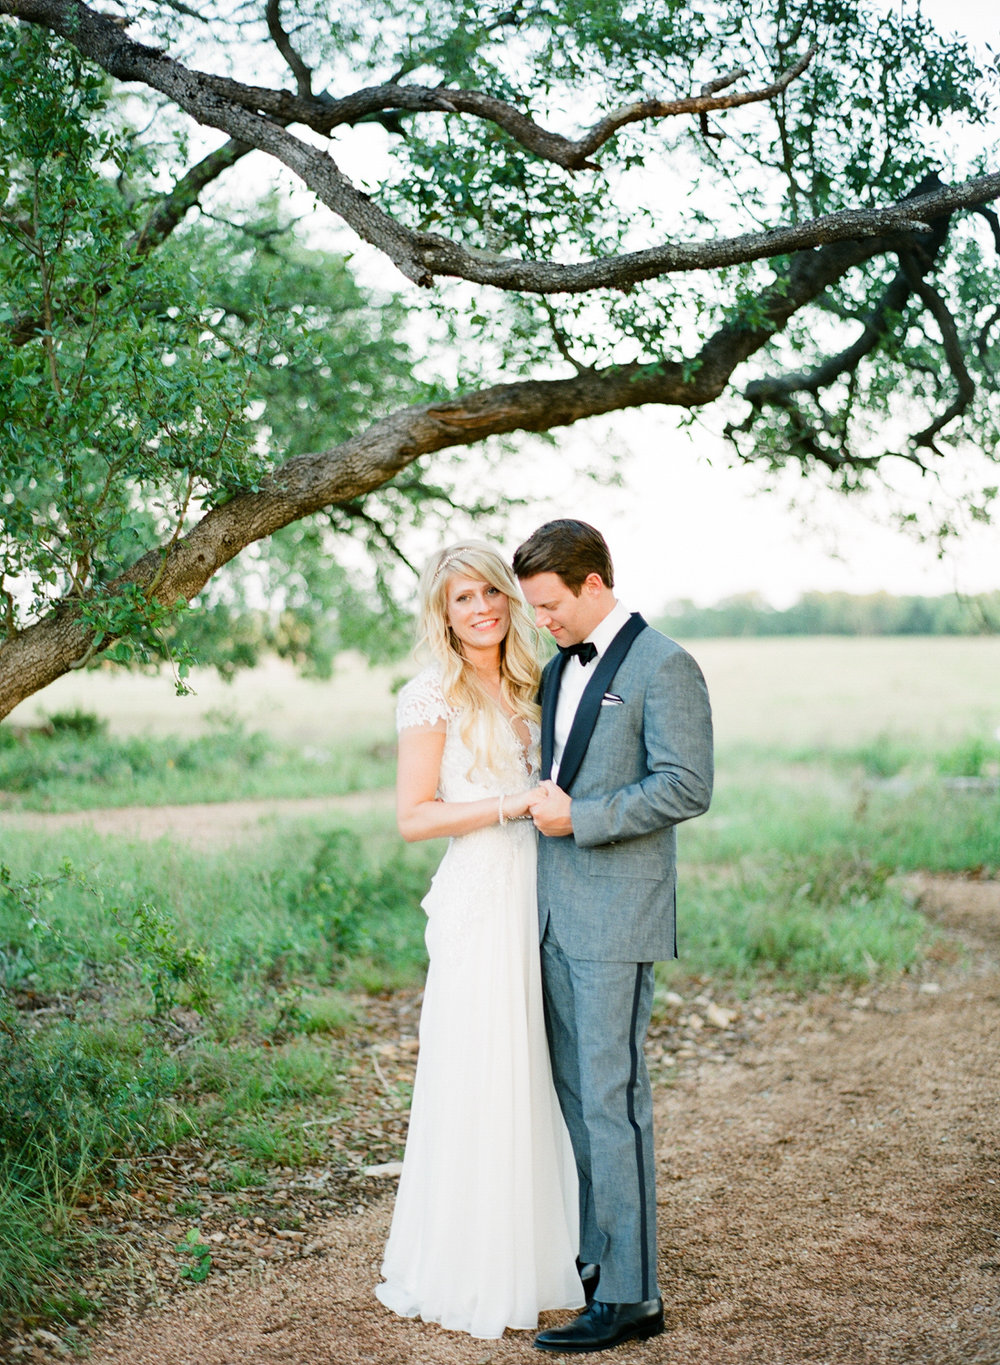 PROSPECT_HOUSE_WEDDING_AUSTIN_TX_BY_MATTHEW_MOORE_PHOTOGRAPHY_00592.jpg